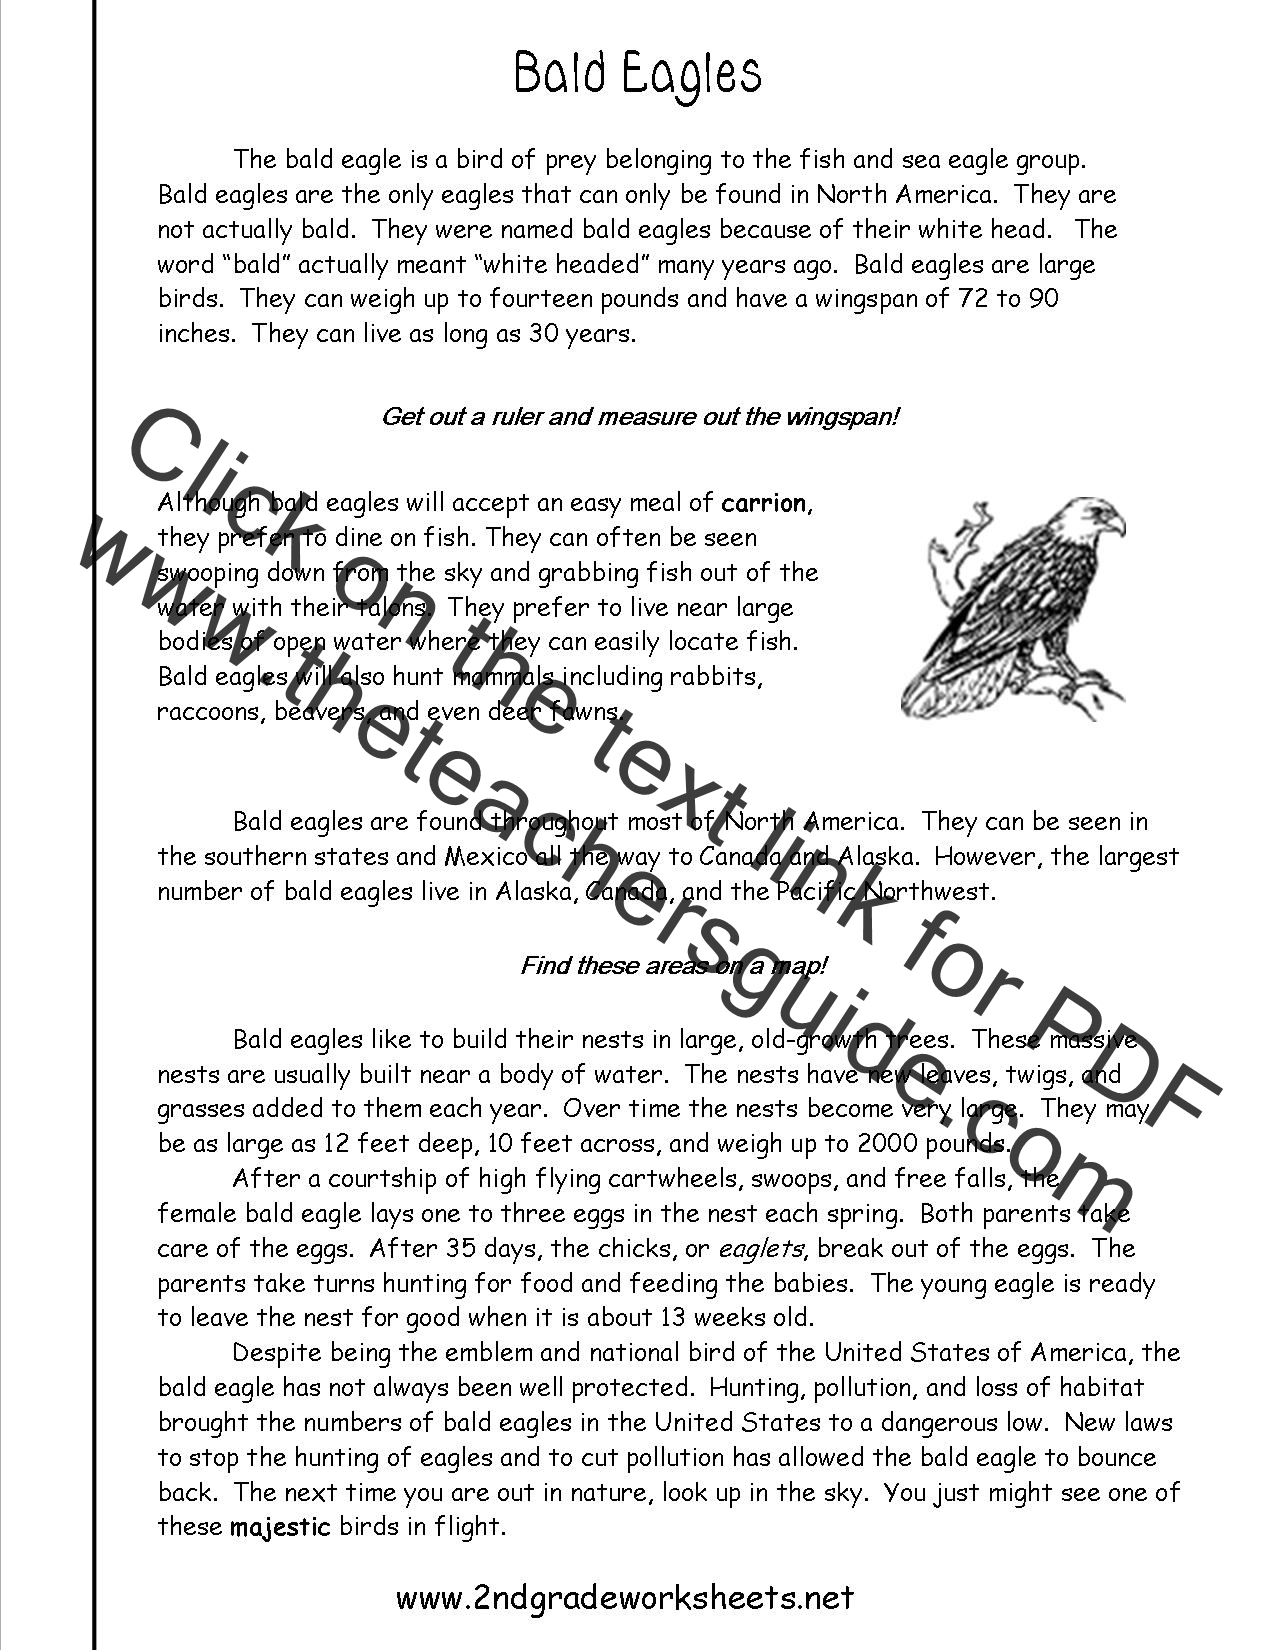 Printables Reading Informational Text Worksheets reading informational text worksheets bald eagles